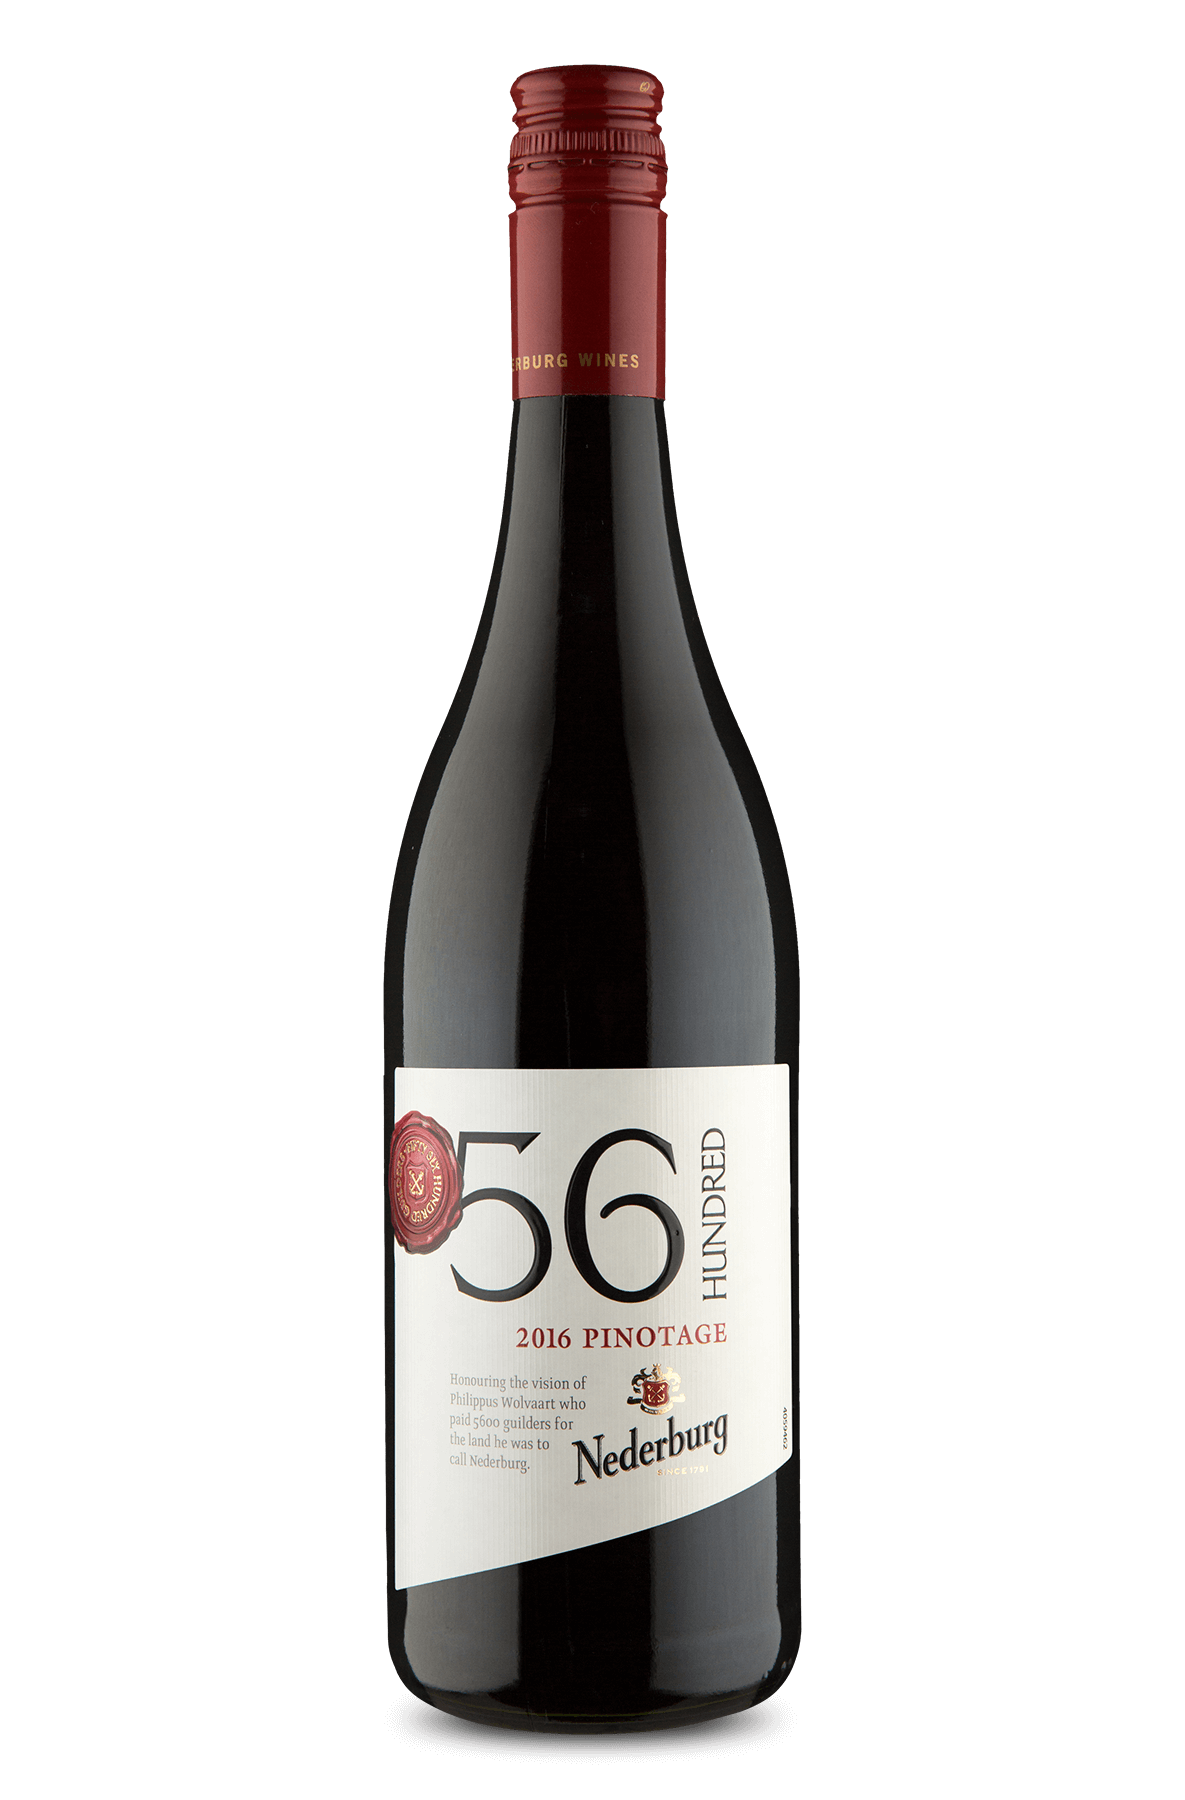 Nederburg 56 Hundred Pinotage 2016